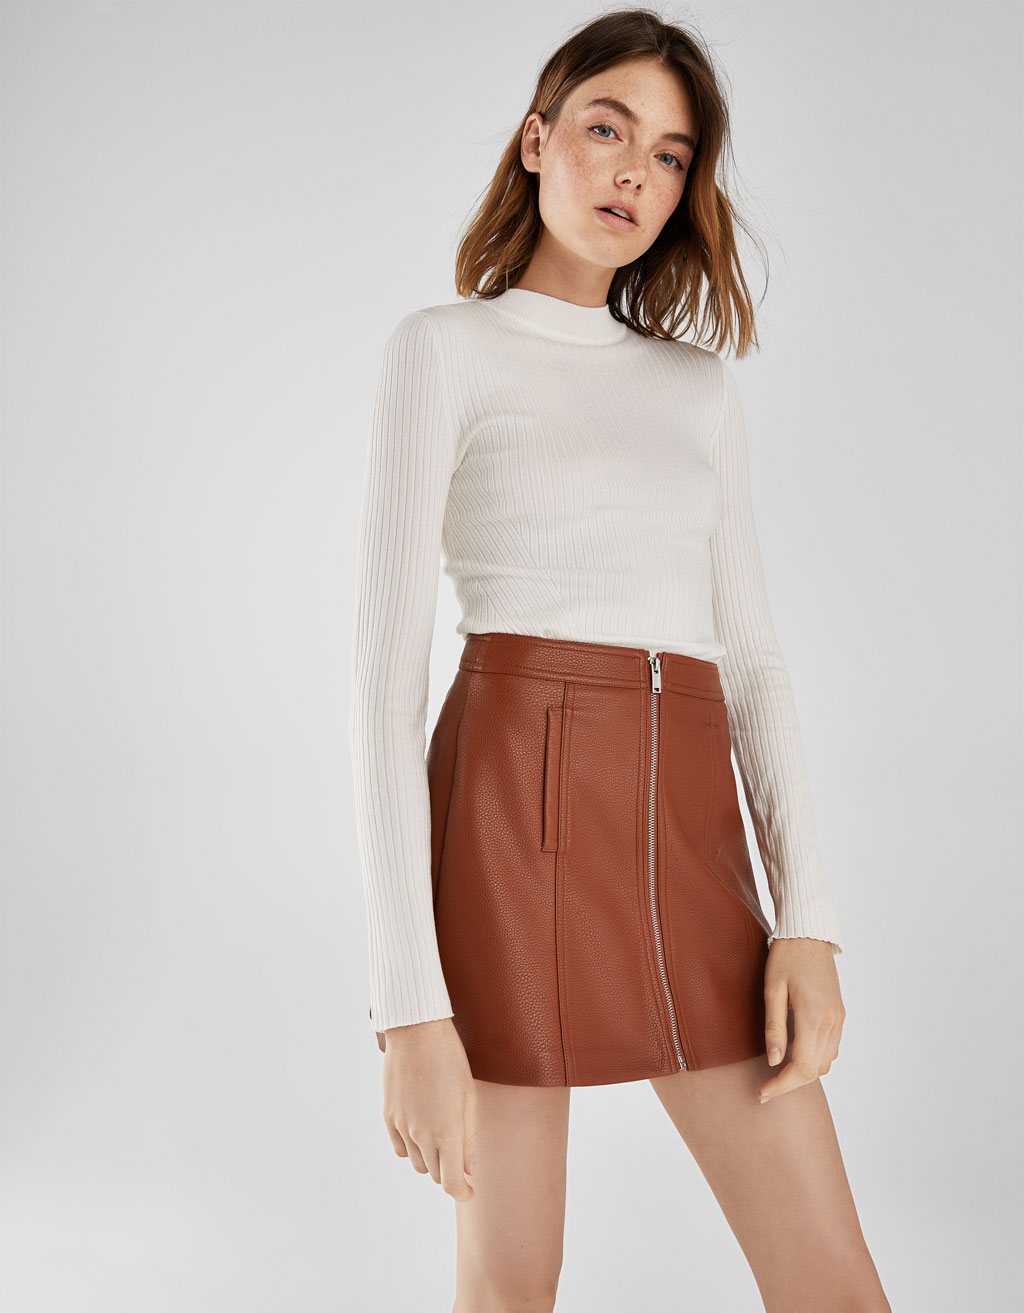 Zip-up skirt